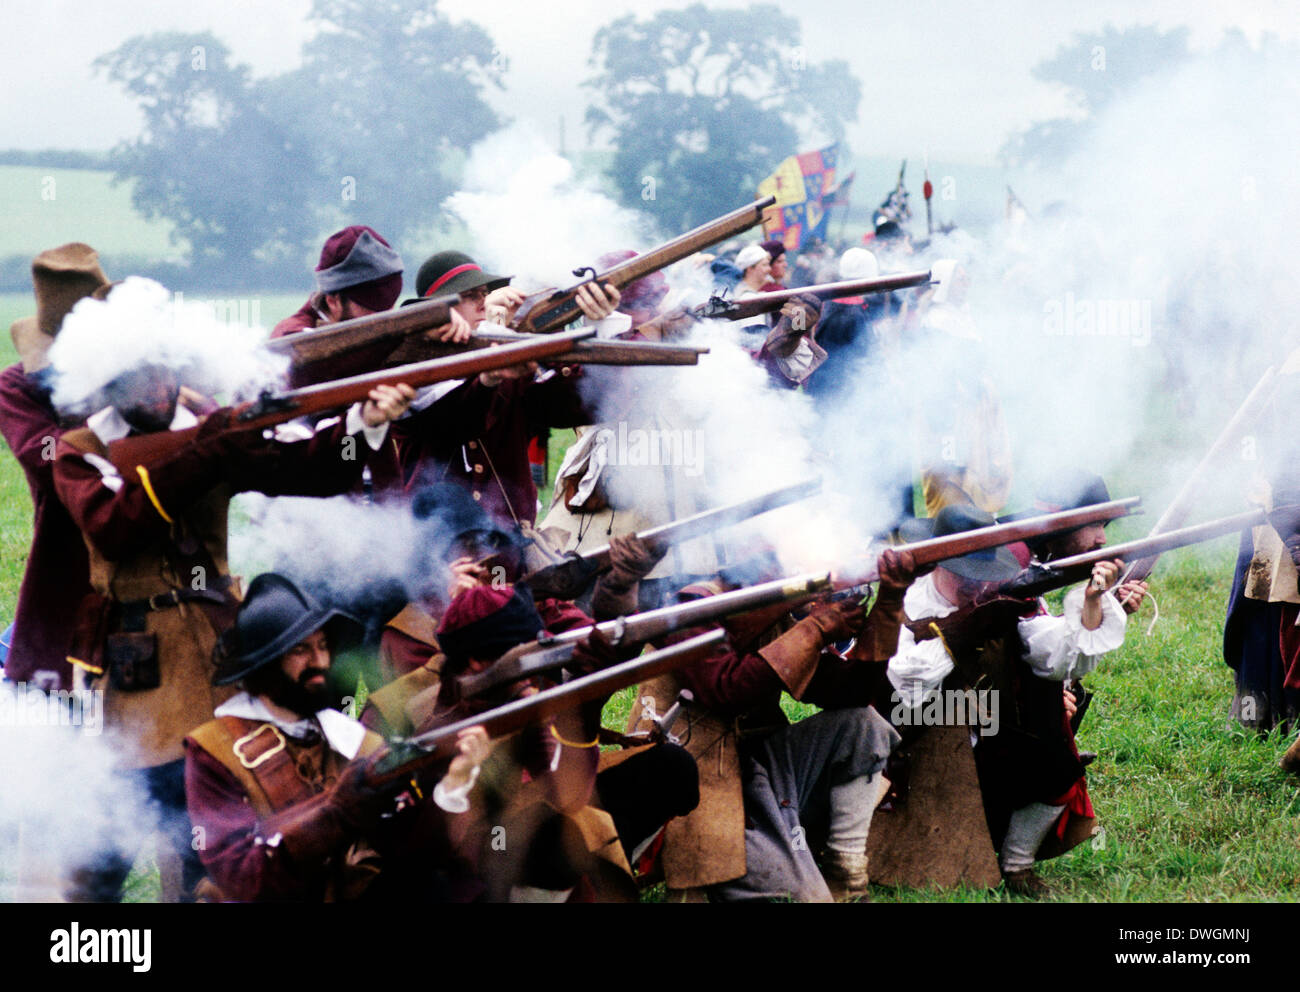 English Civil War, musket fire in battle, 17th century, battles firing muskets, historical re-enactment soldier soldiers England UK military - Stock Image